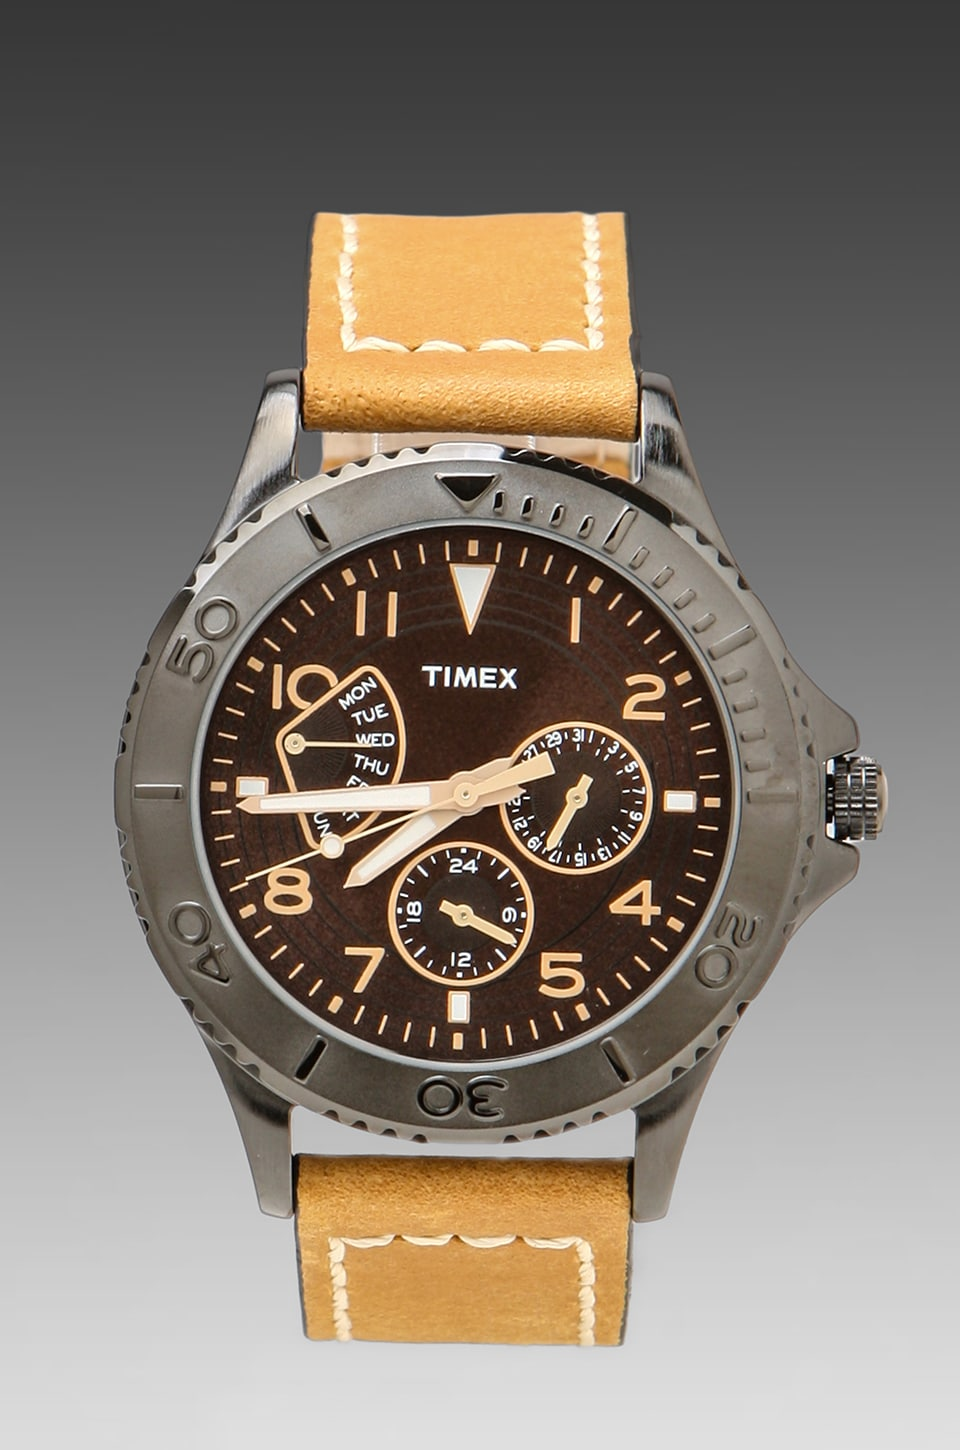 Timex Watch in Black w/ Tan Straps